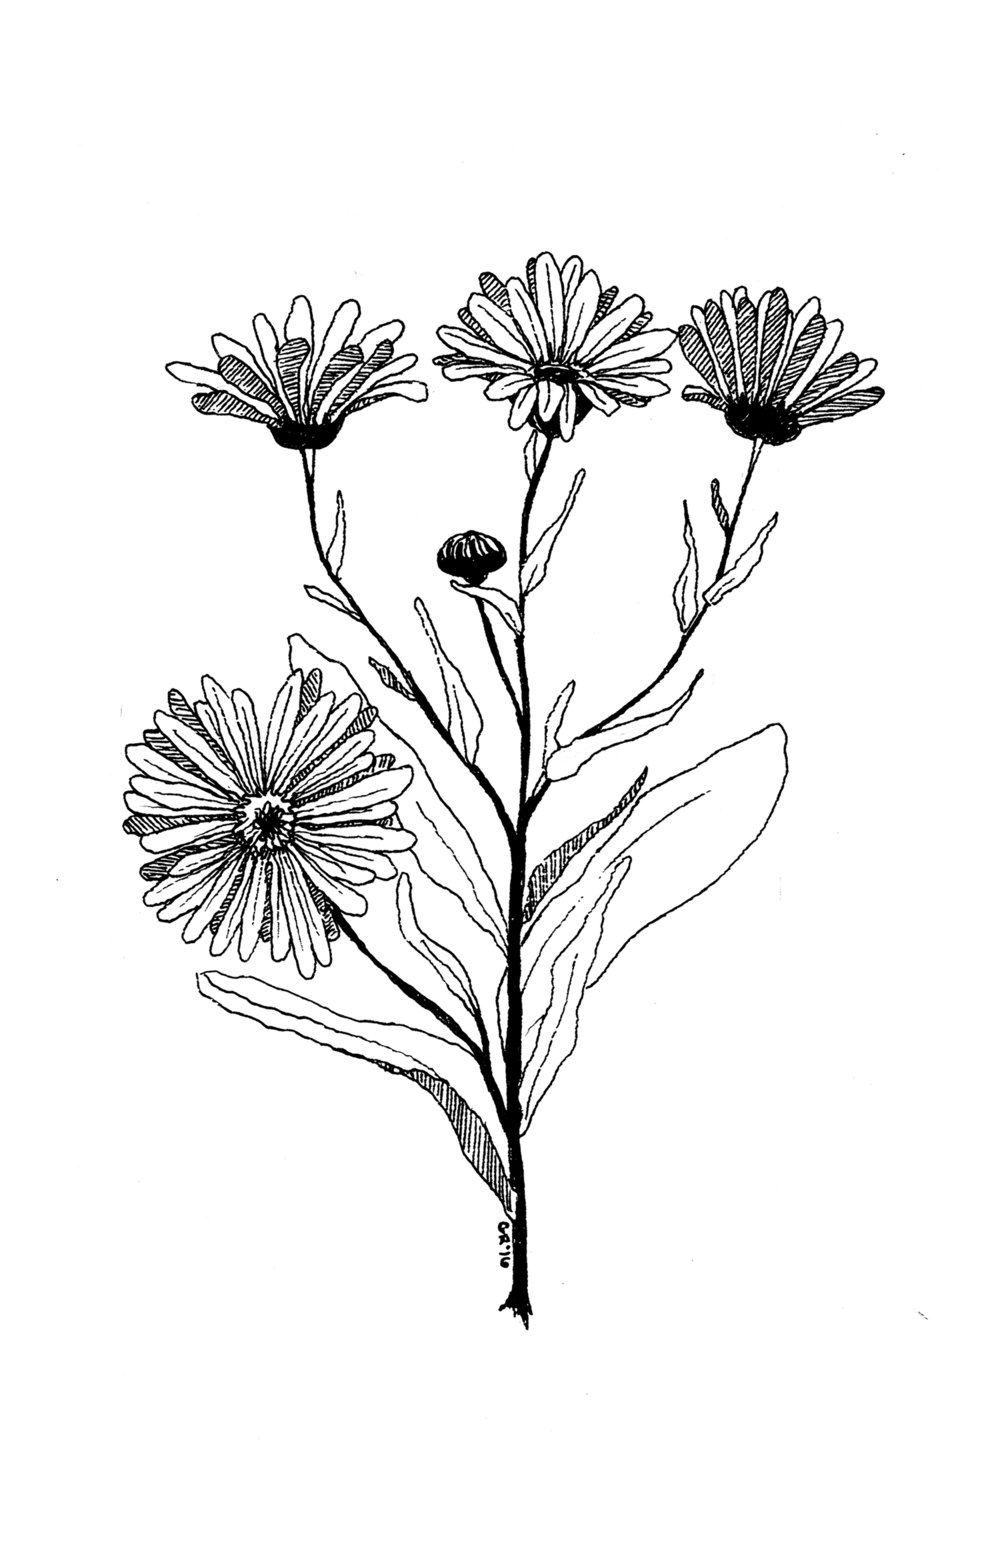 Calendula // For Germinate Cultivate zine by Homestead Apothecary // India ink